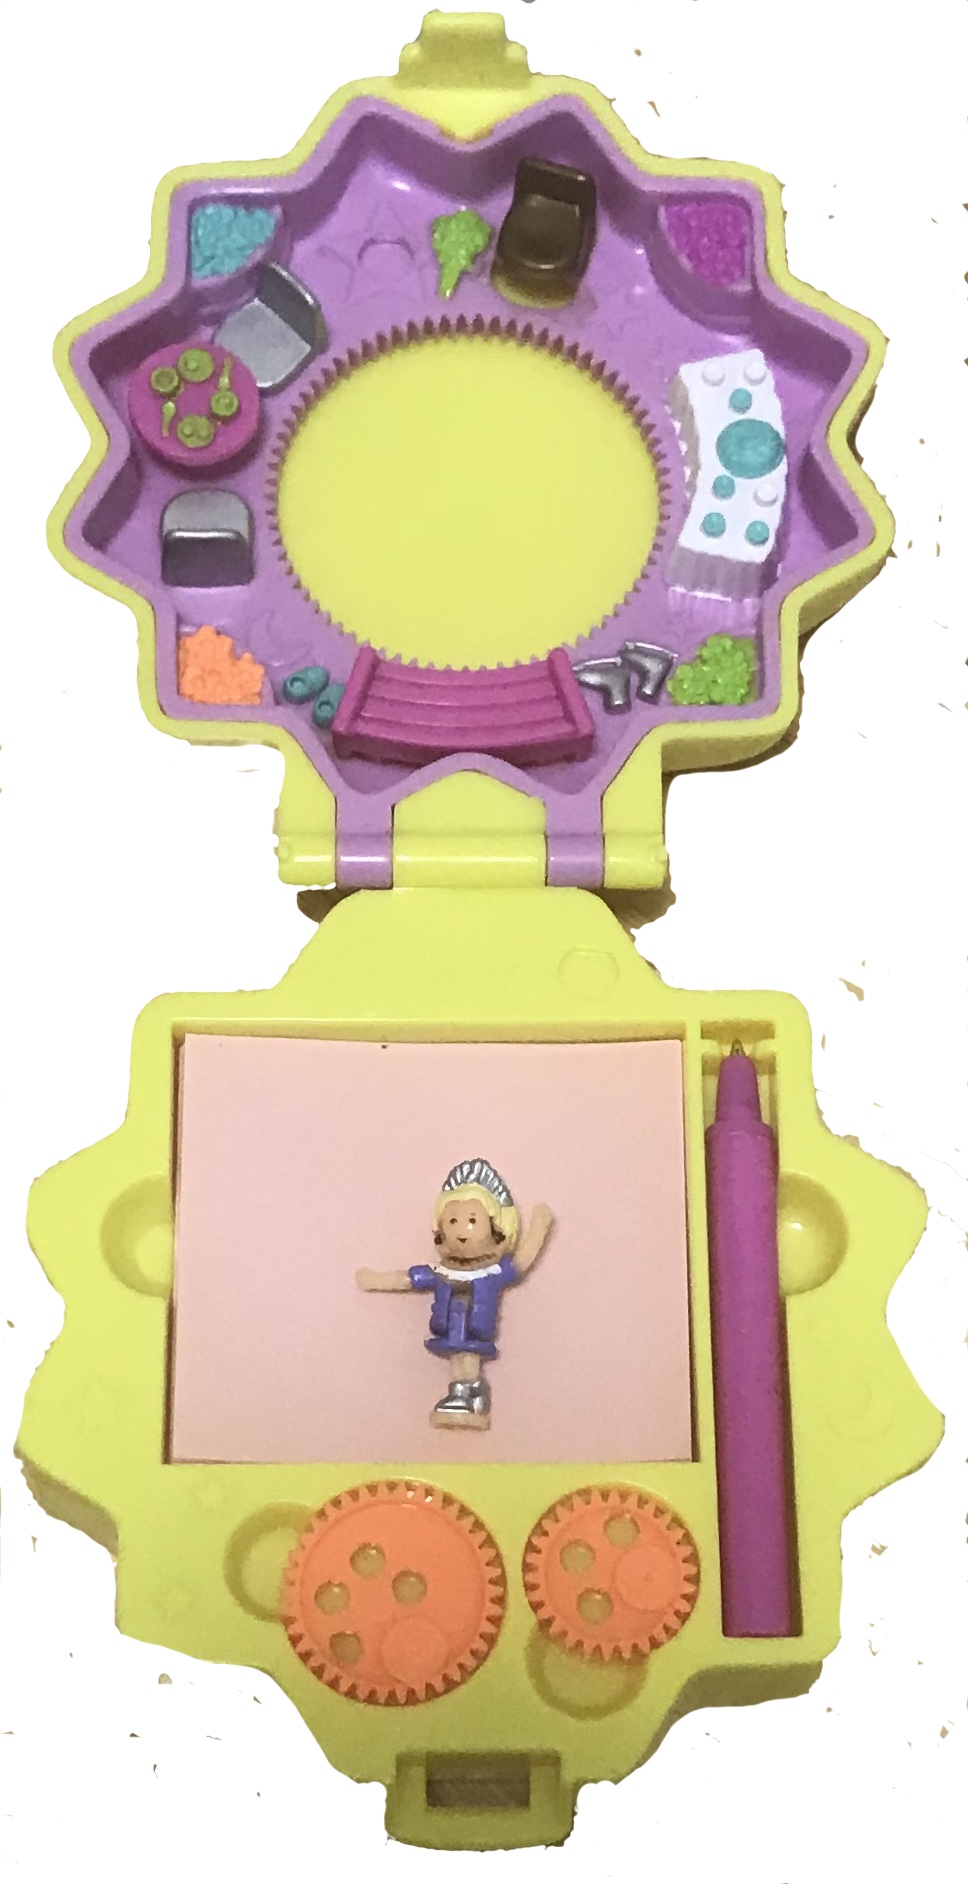 1995 Polly Pocket Polly S Pattern And Picture Maker